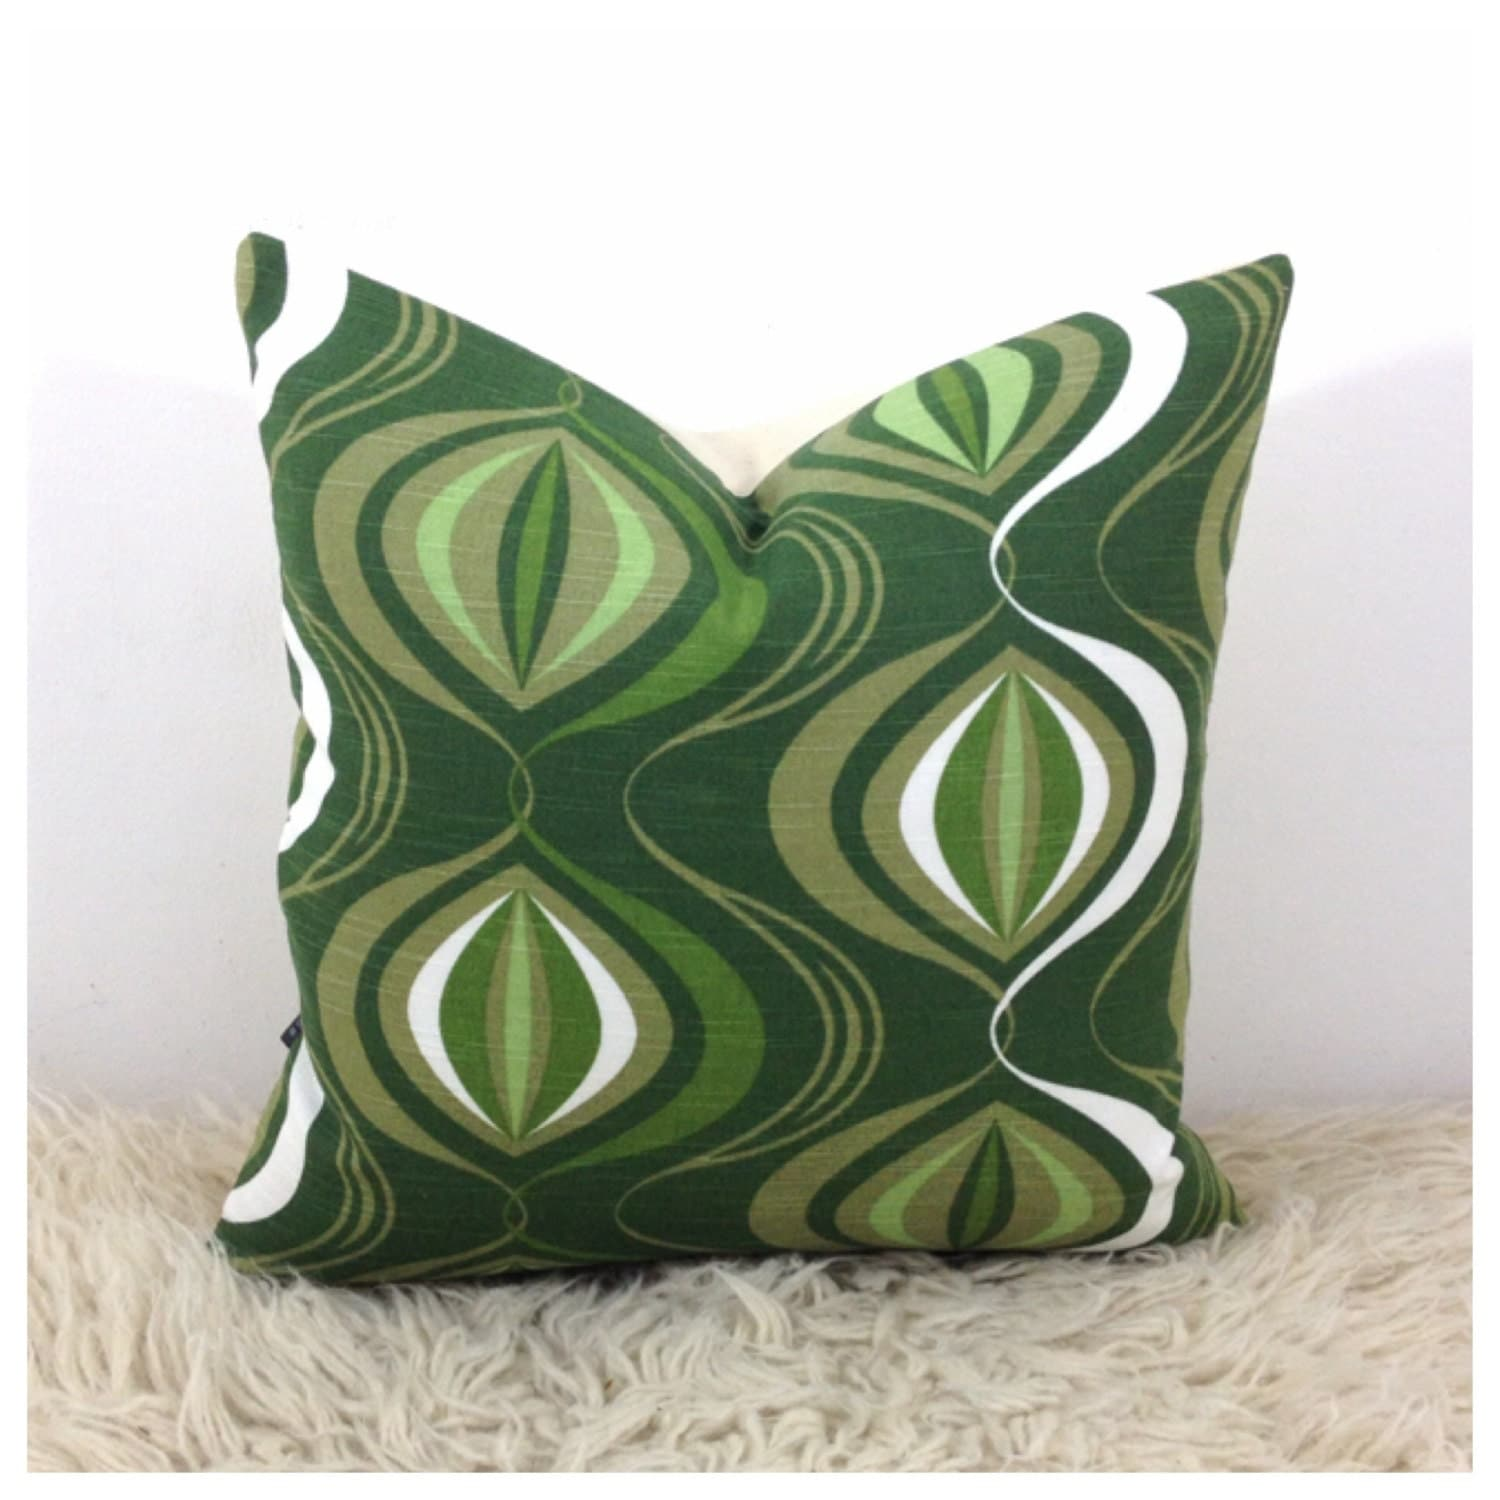 Throw Pillow Cover Fabric : Throw Pillow Cover 1970s Vintage Fabric 16 x 16